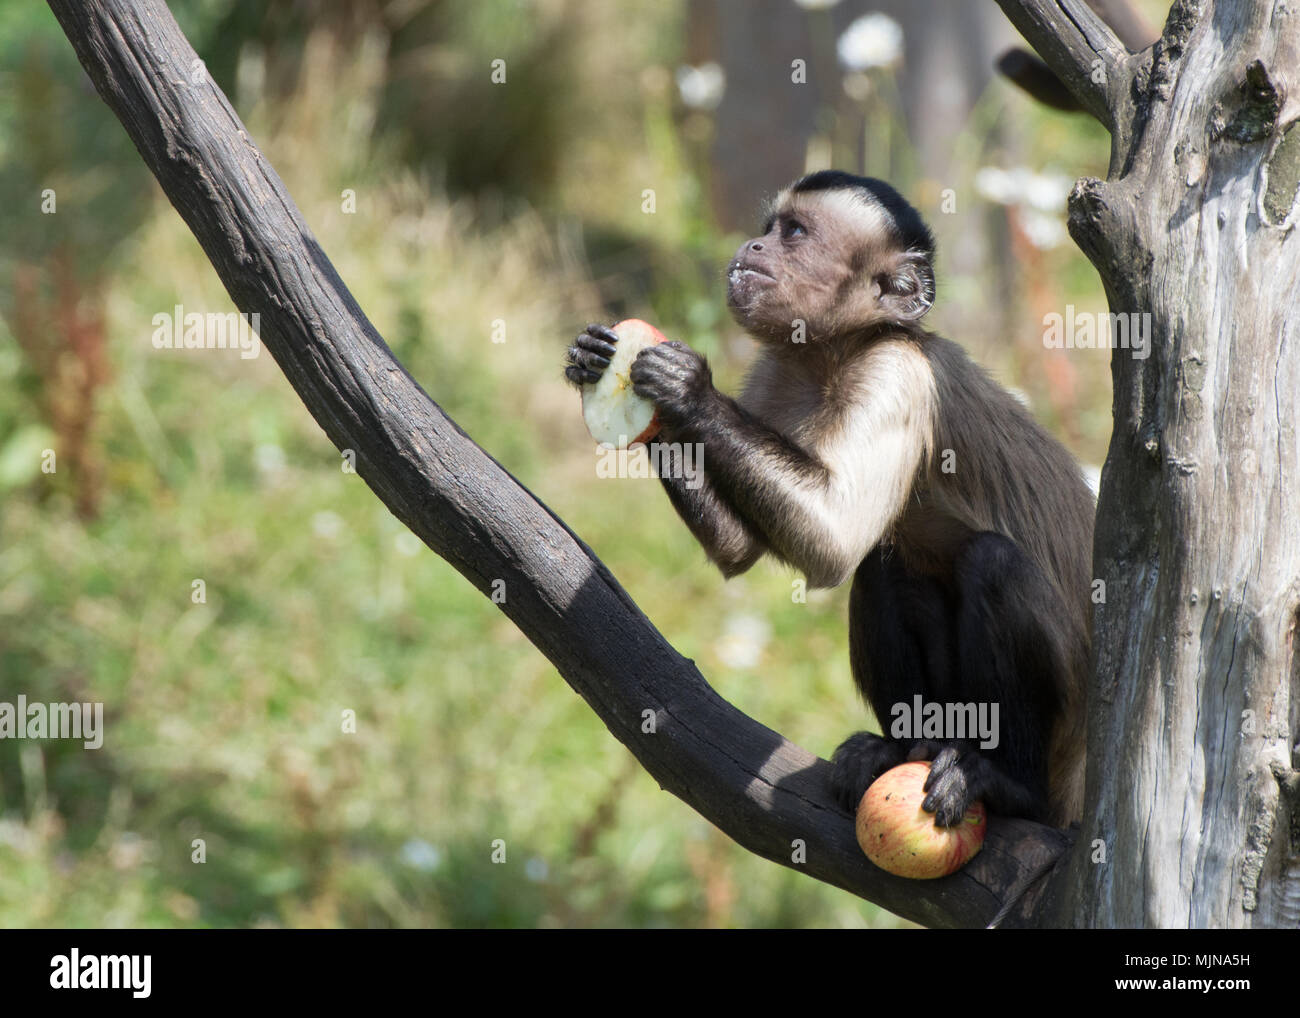 Tufted capuchin monkey sitting on branch holding an apple in its hands and another in one foot, looking upwards as though in prayer at Edinburgh Zoo - Stock Image